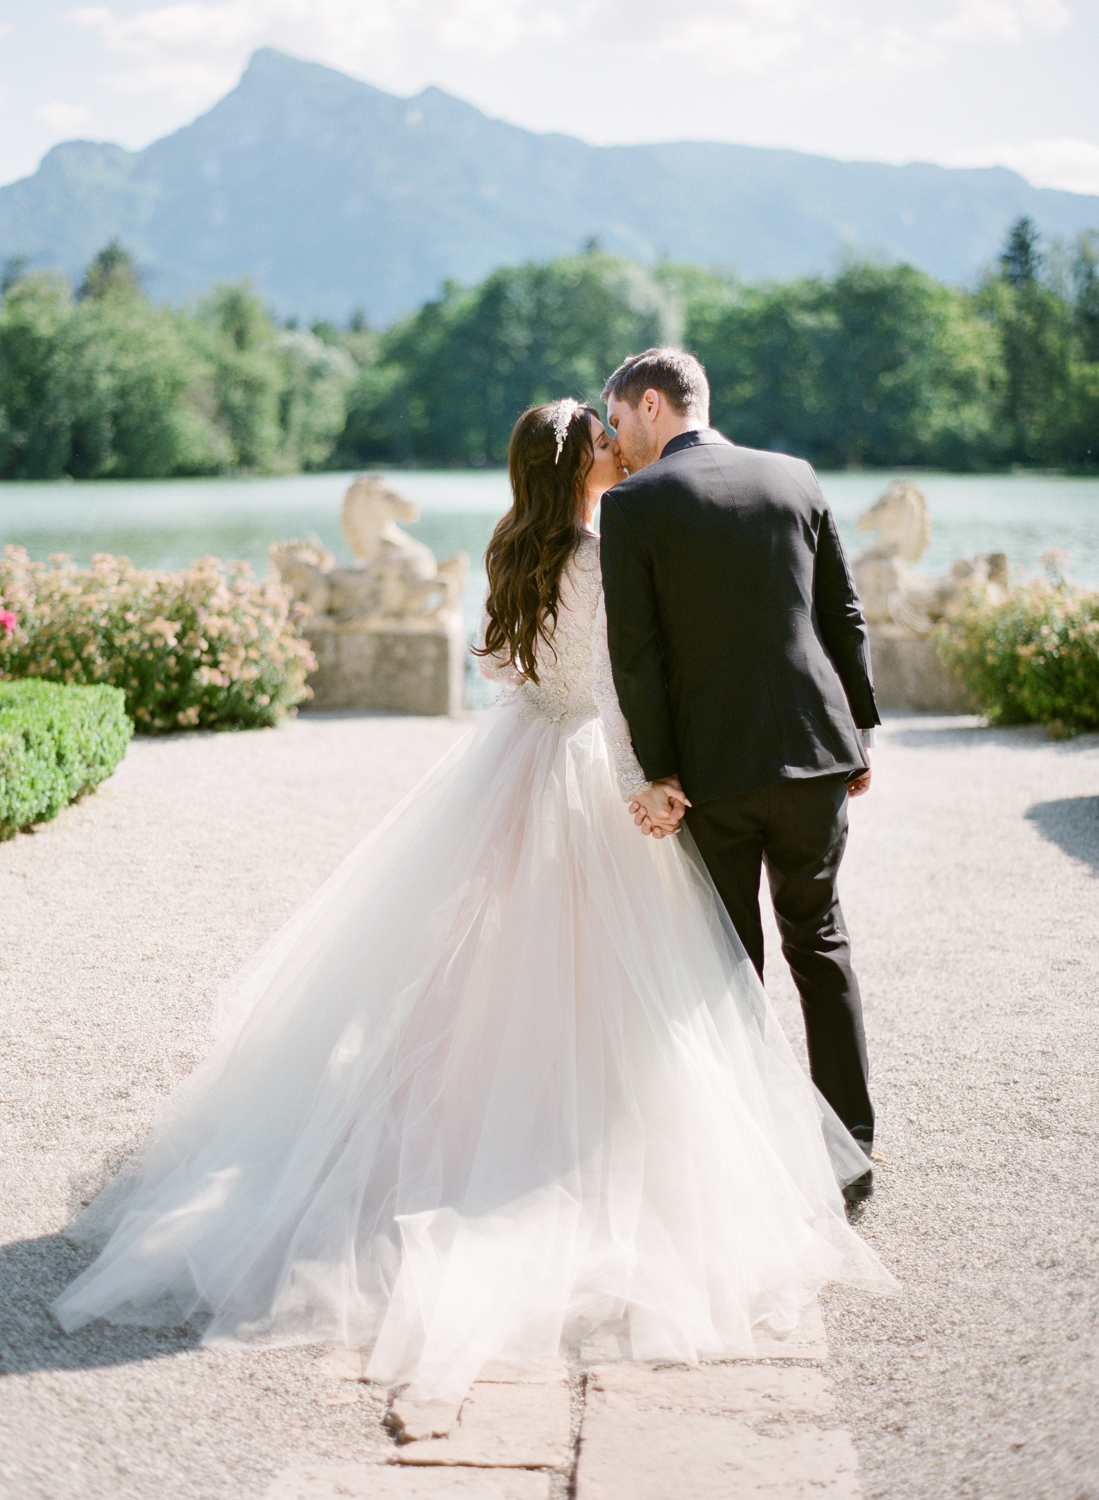 lake_como_wedding_photographer_nikol_bodnarova_137.JPG